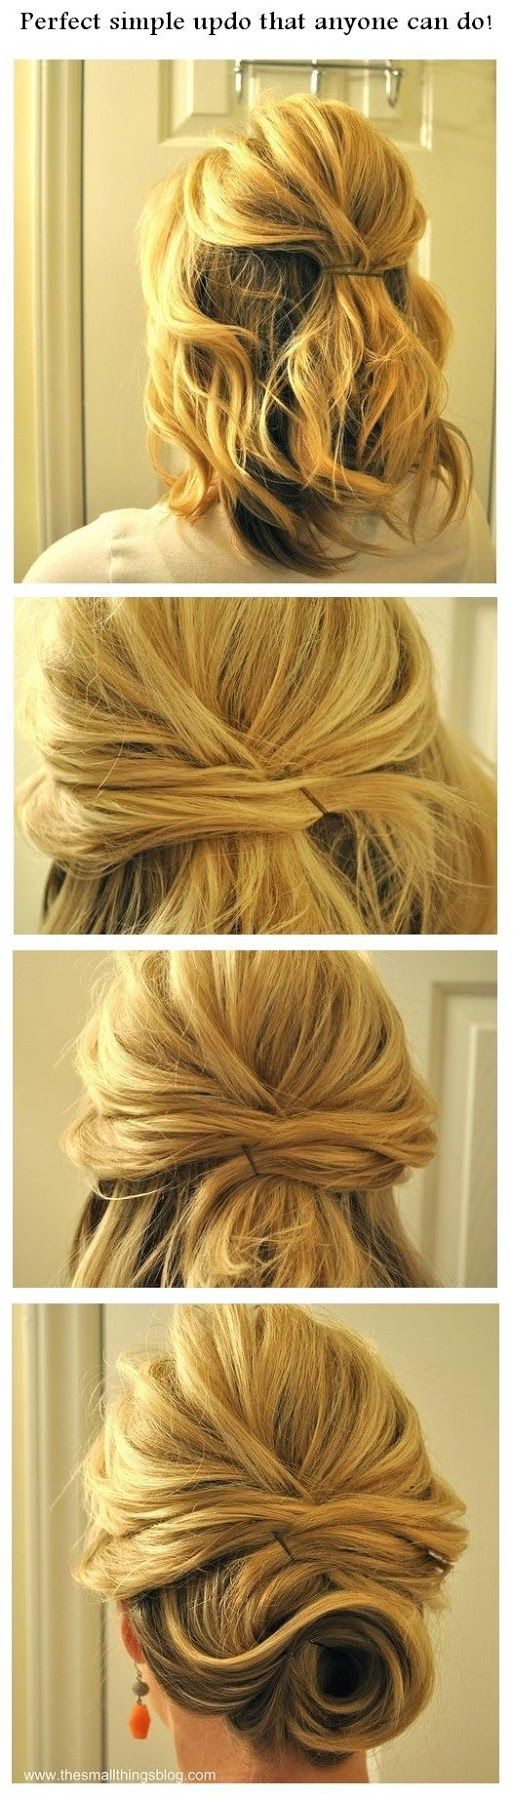 The perfect messy bun in 3 steps black tie hair style and simple updo i need good wedding hair i can do myself for an upcoming wedding solutioingenieria Choice Image